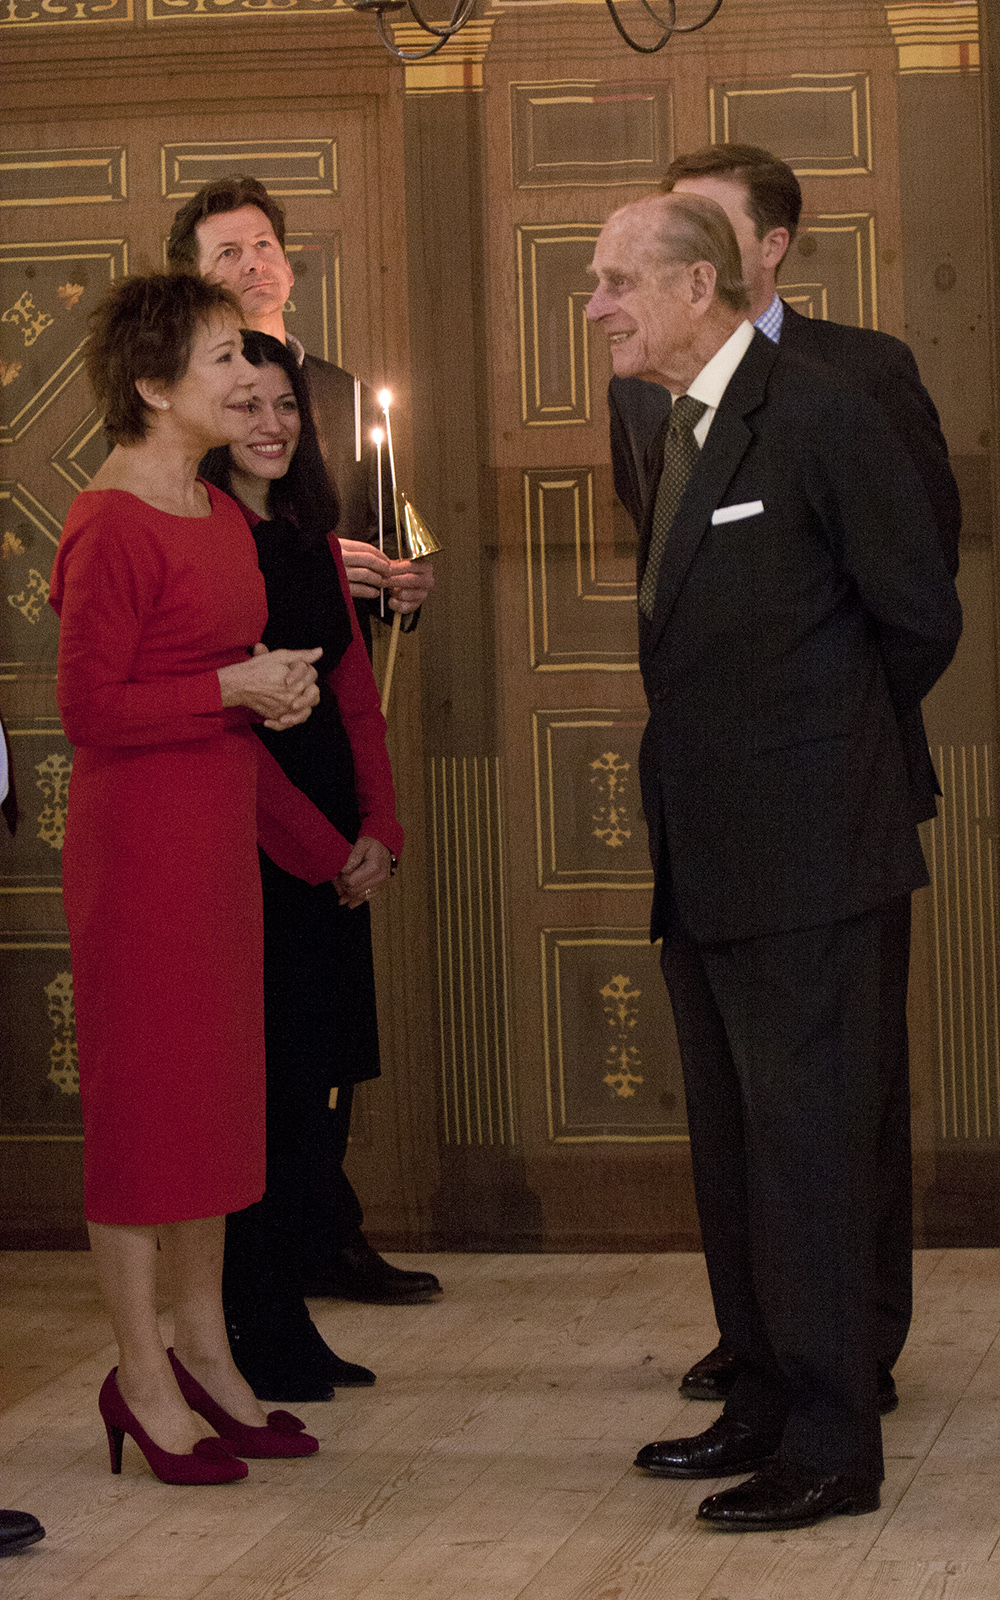 Zoe Wanamaker and His Royal Highness The Prince Philip, Duke of Edinburgh stand talking to each other in the Sam Wanamaker Playhouse.